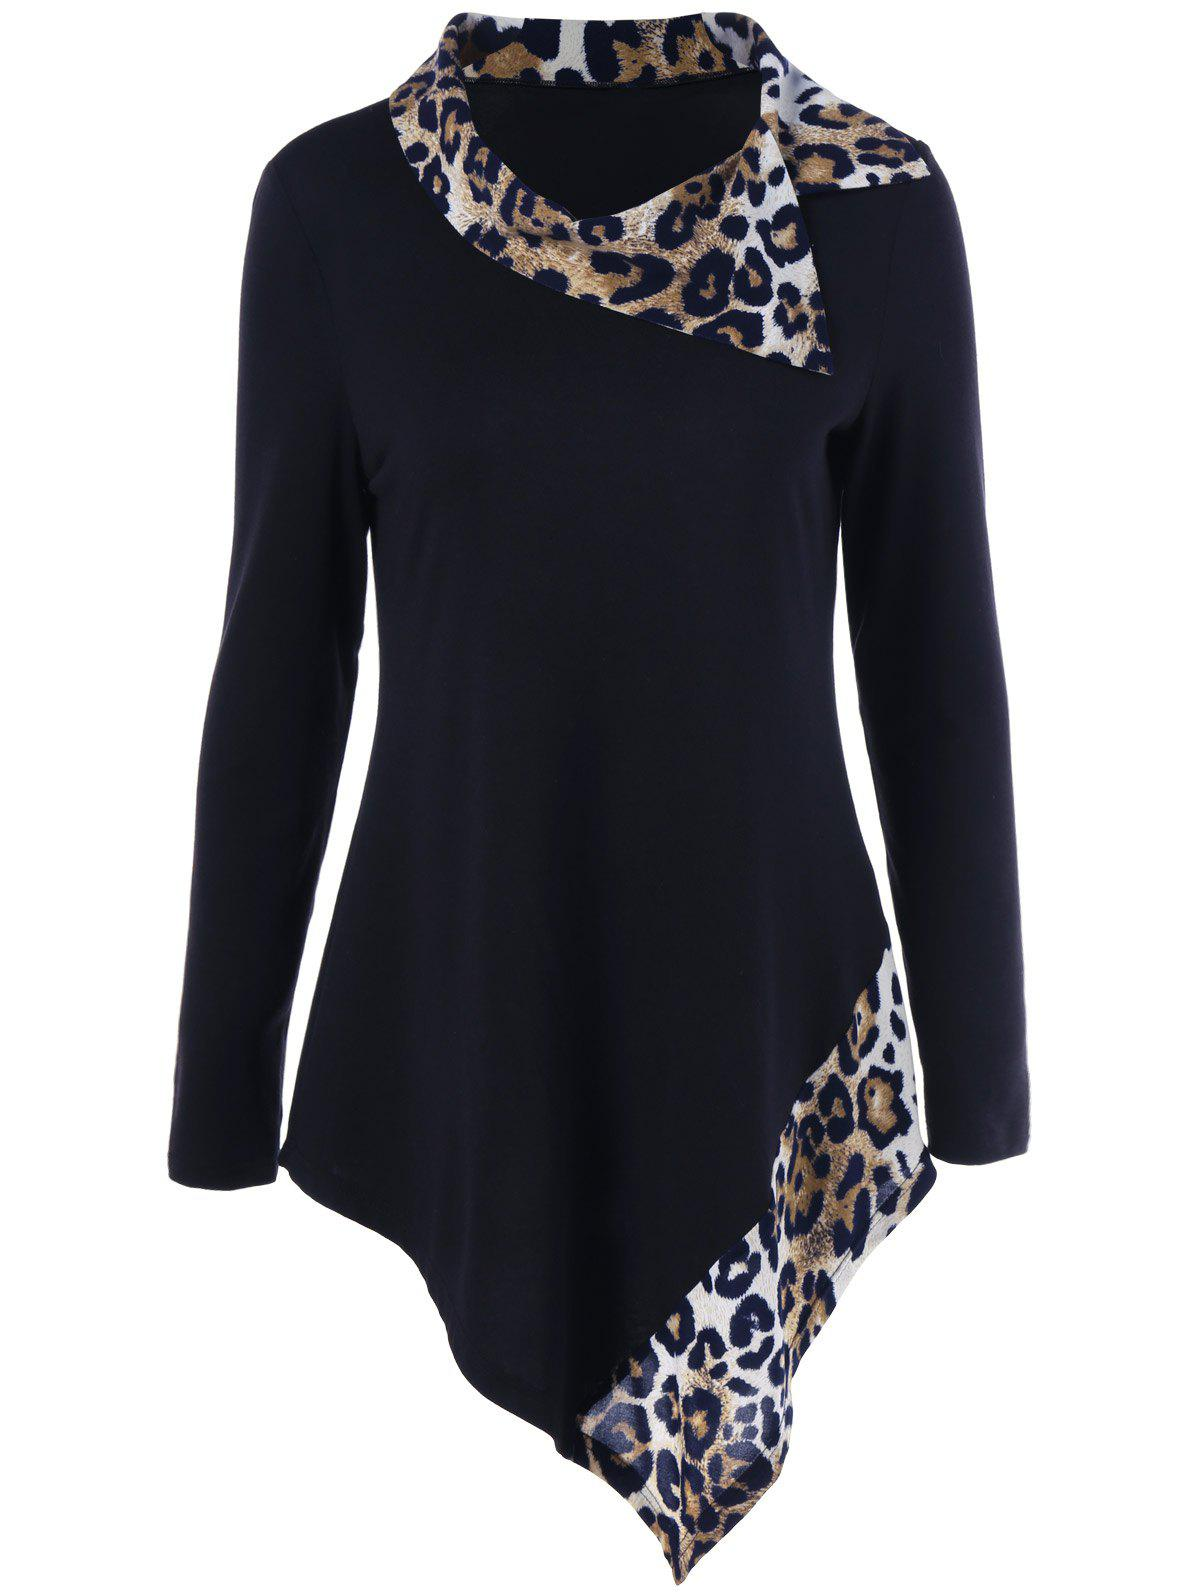 Leopard Panel Asymmetrical T-Shirt - BLACK XL